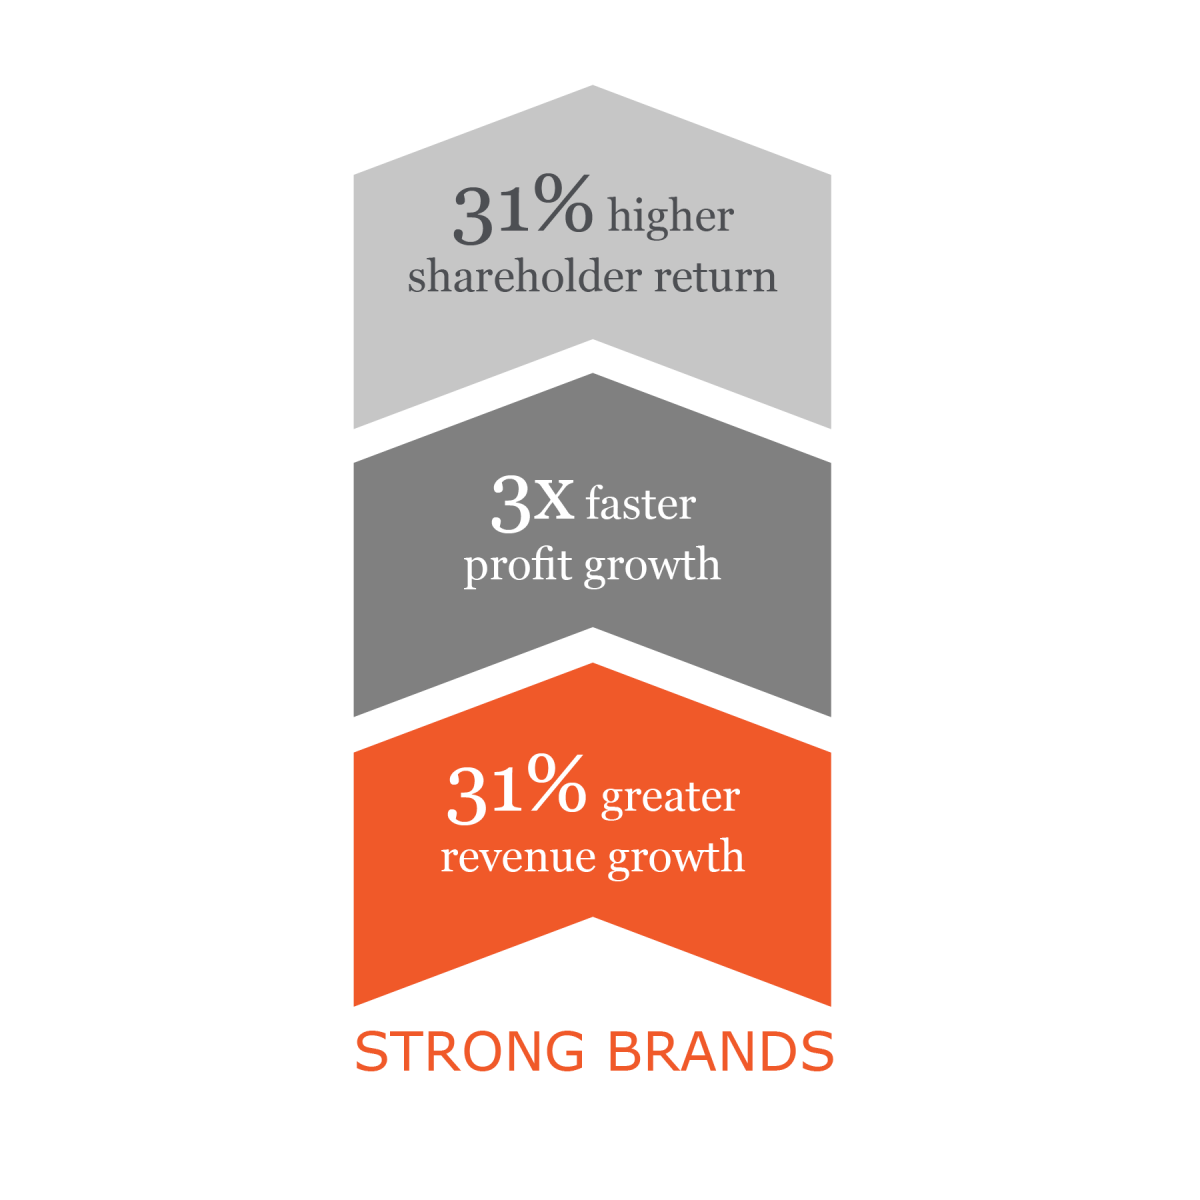 31% greater revenue growth, 3x faster profit growth, 31% higher shareholder return